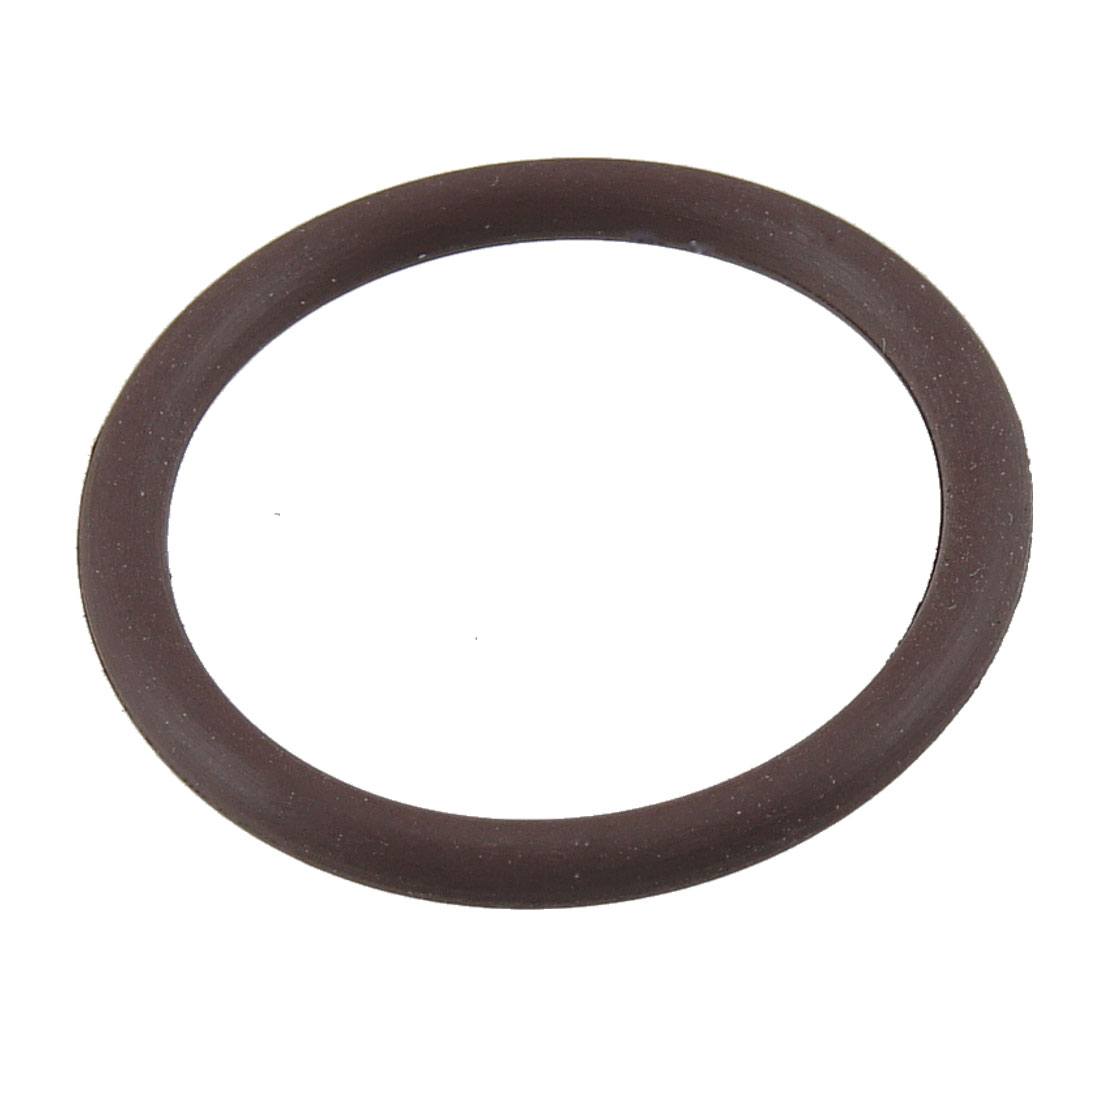 31mm x 25mm x 3mm Fluorine Rubber Sealing O Ring Gasket Washer